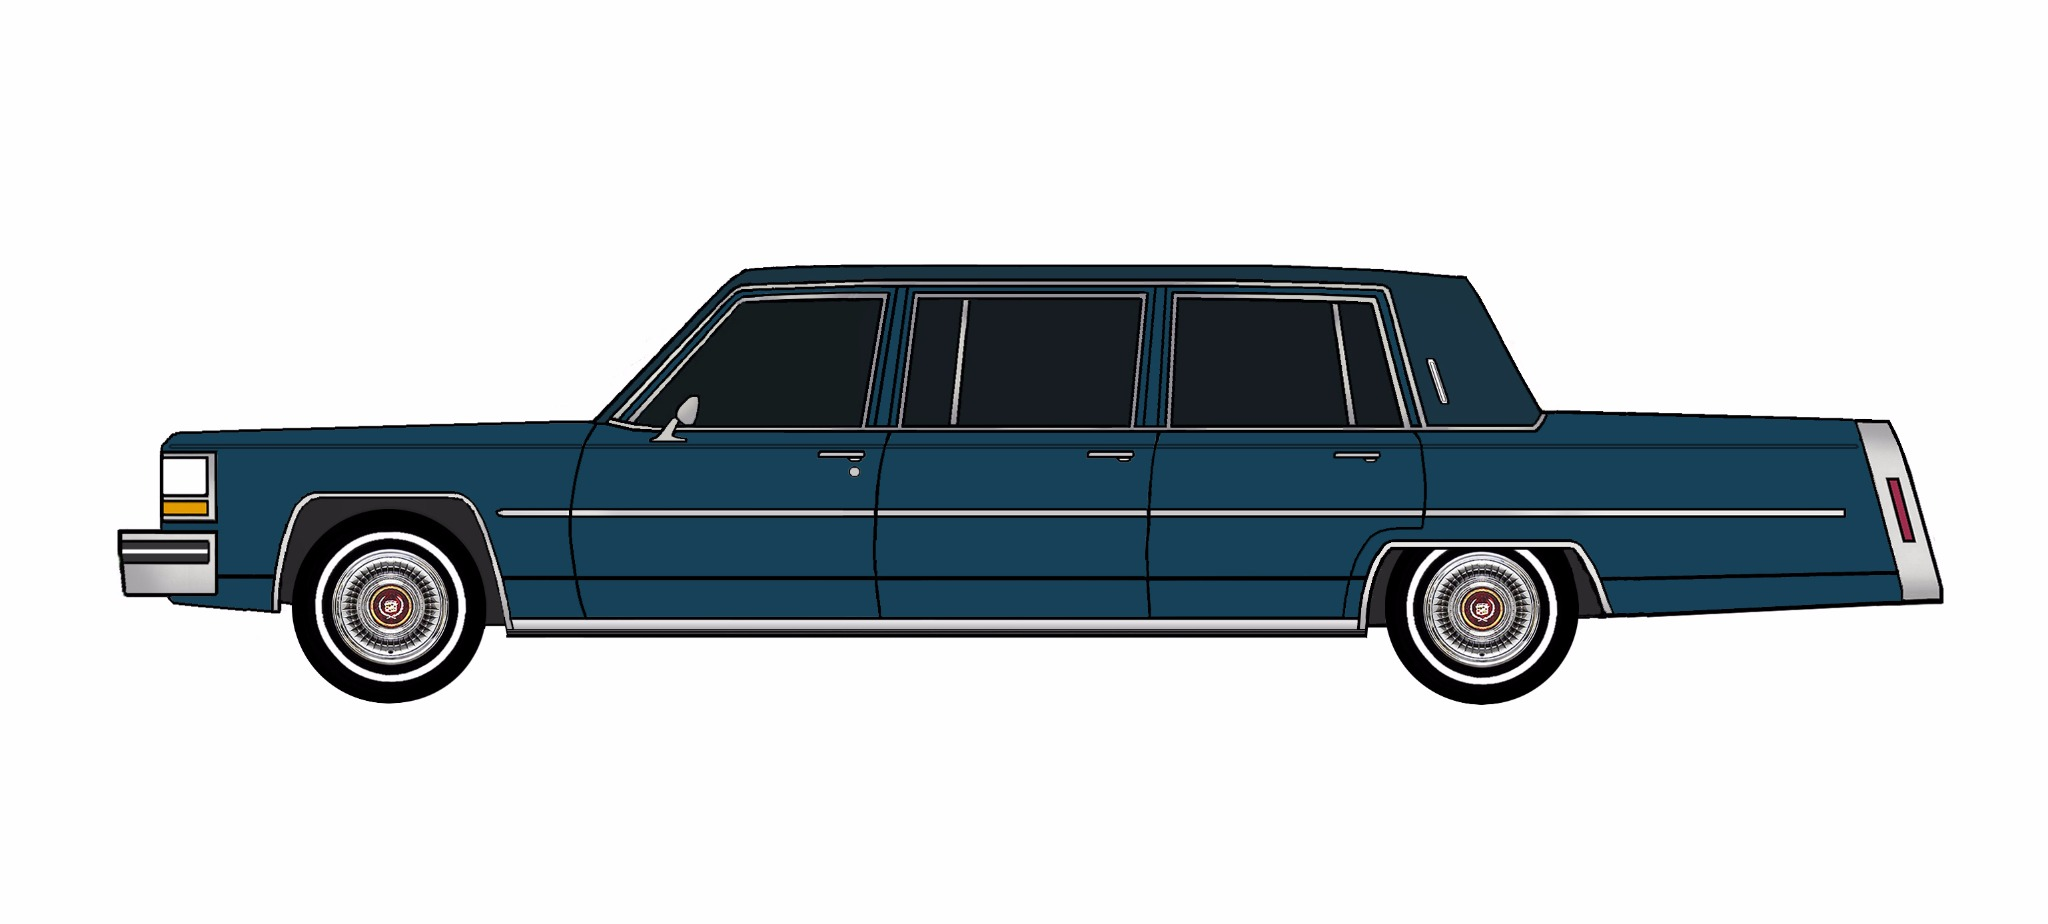 1981 Cadillac Fleetwood Funeral Limo MIDNIGHT BLUE